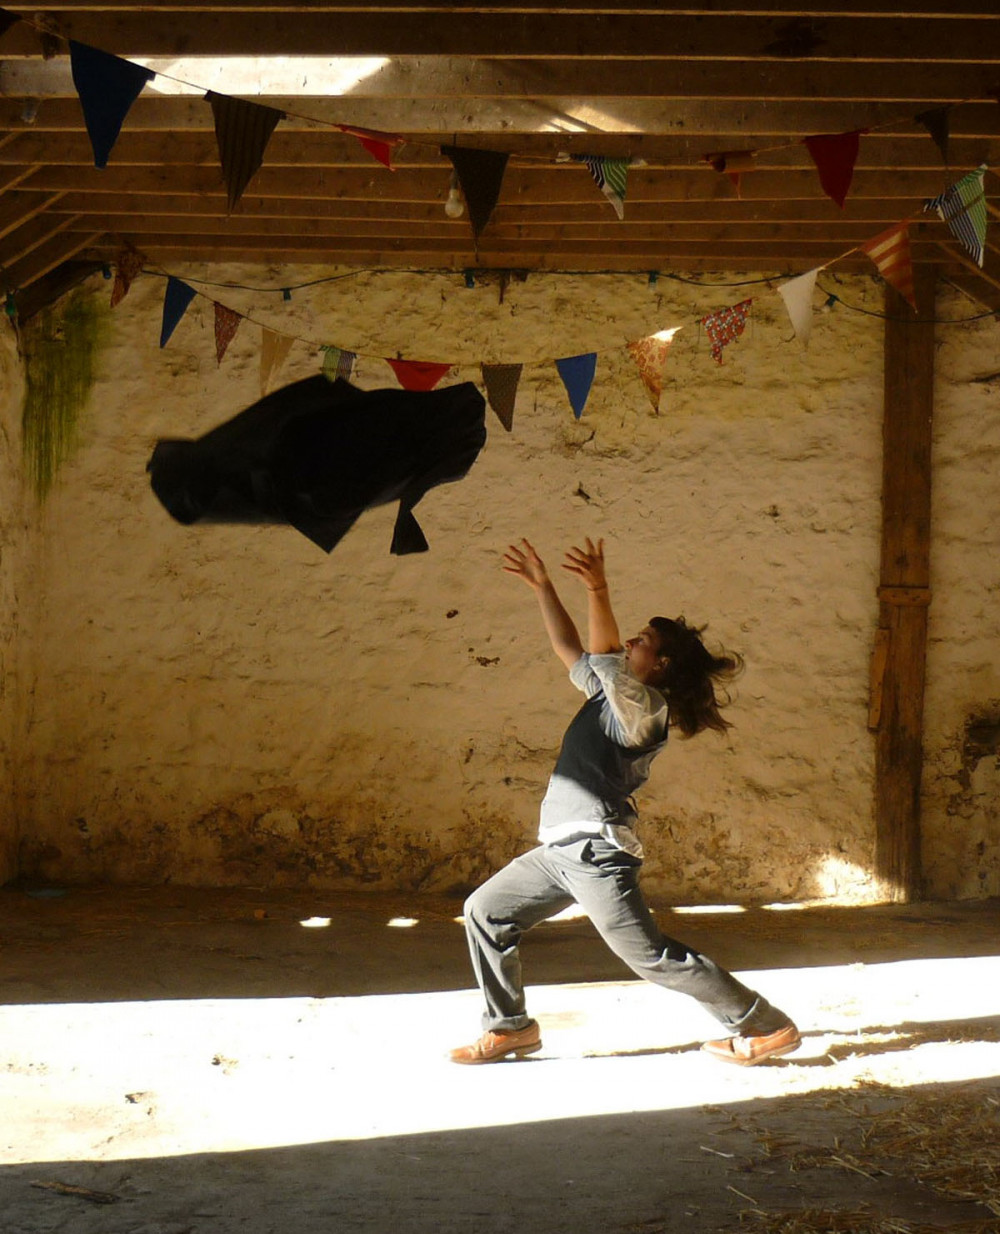 A woman dressed in a suit, is standing in a barn, she has thrown her jacket into the air and is about to catch it.